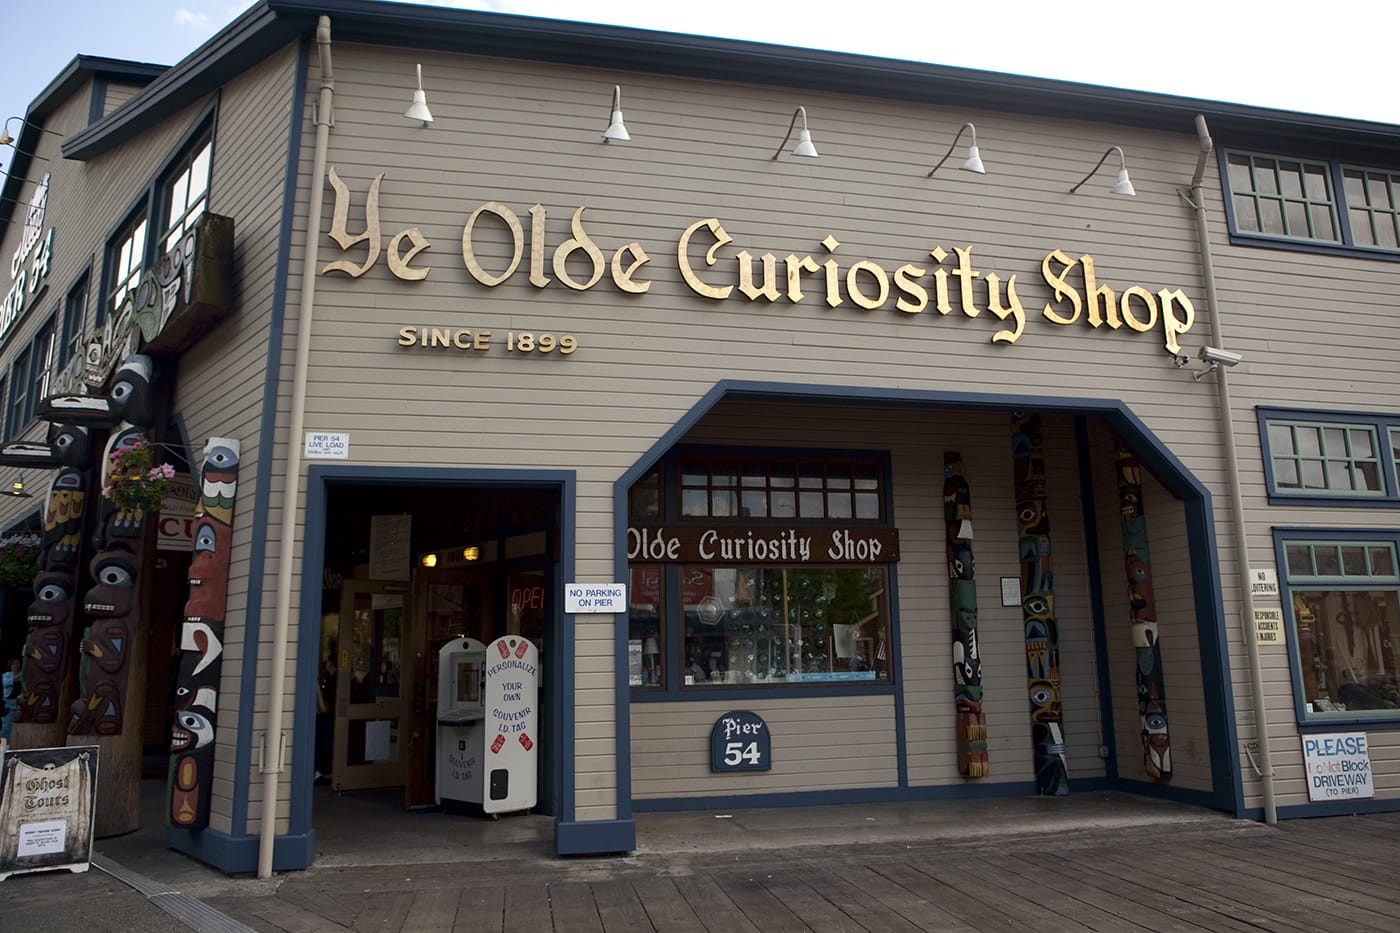 Ye Olde Curiosity Shoppe in Seattle, Washington